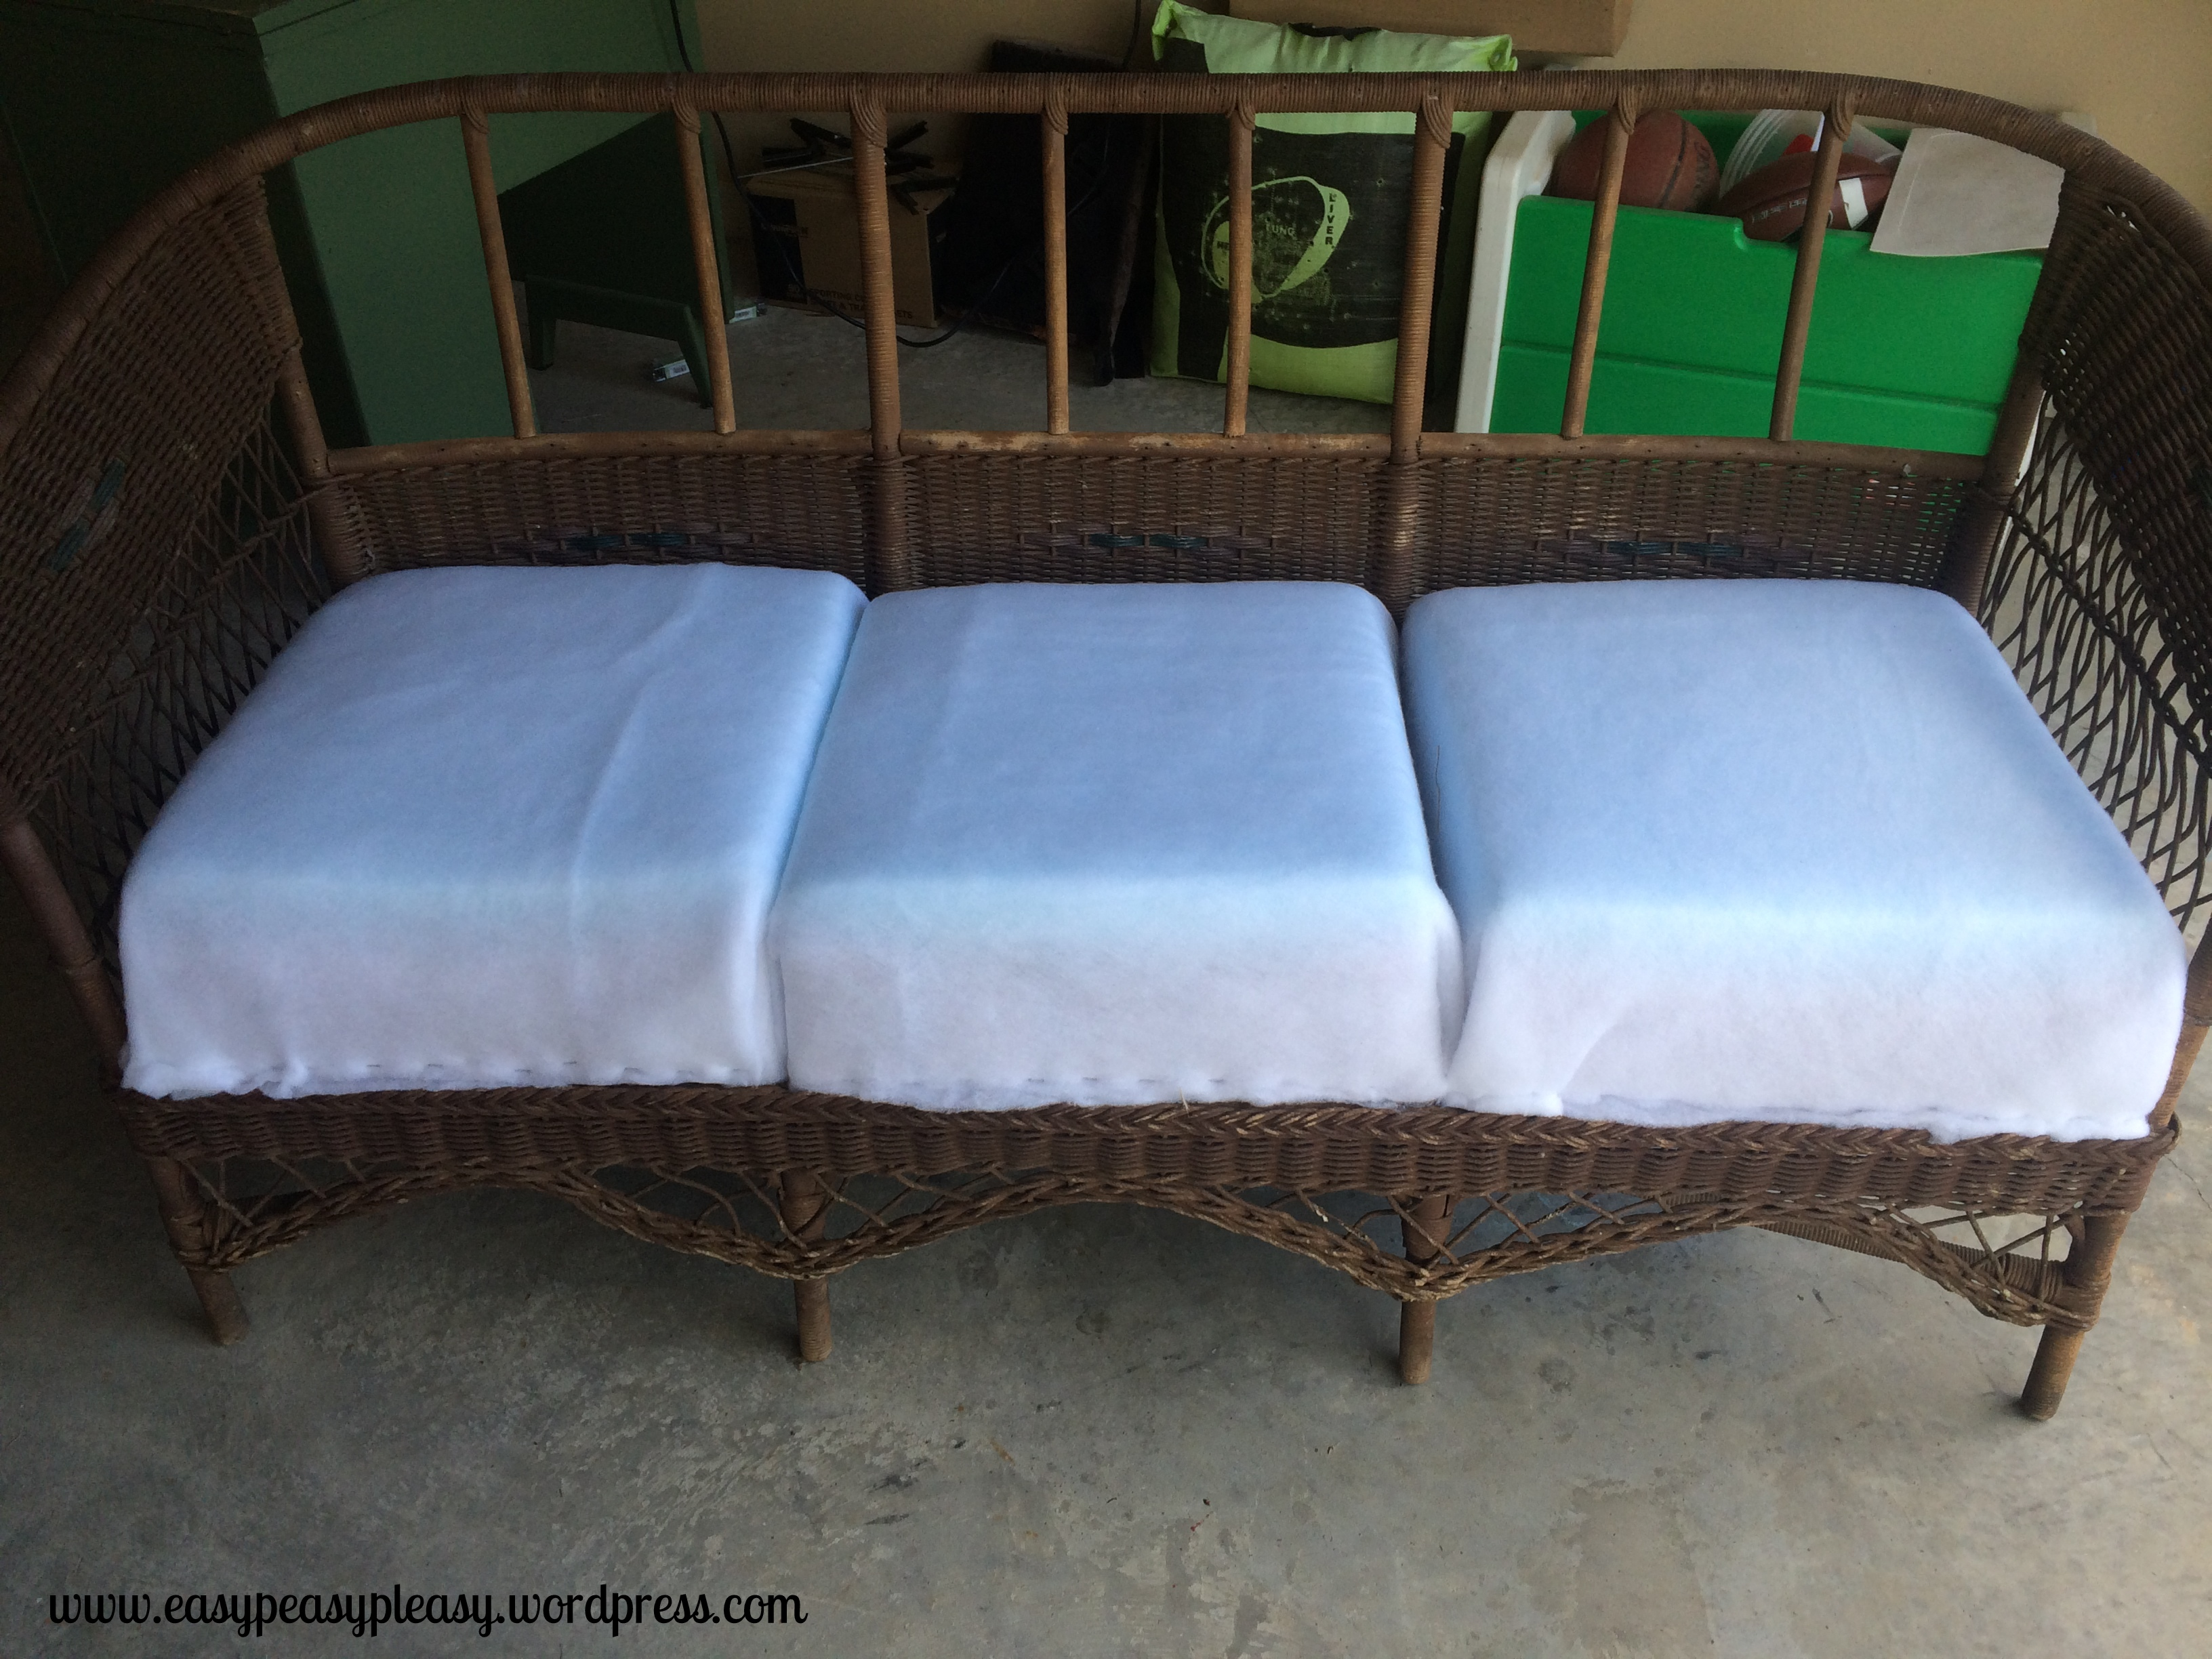 Restoring a Wicker Davenport with spring loaded seats